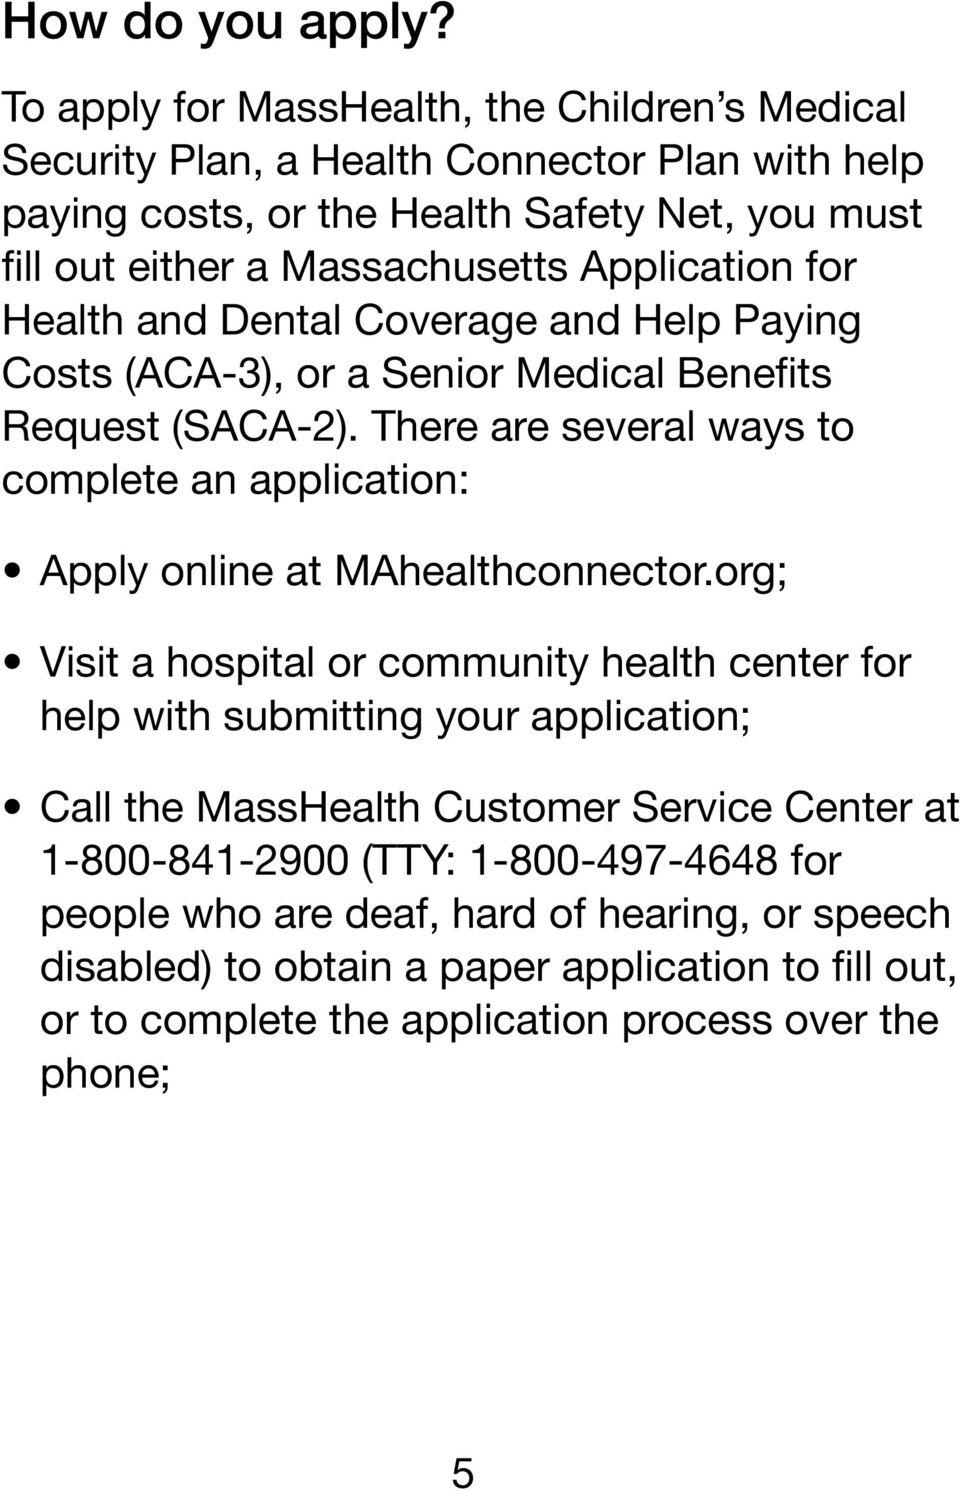 Application for Health and Dental Coverage and Help Paying Costs (ACA-3), or a Senior Medical Benefits Request (SACA-2).